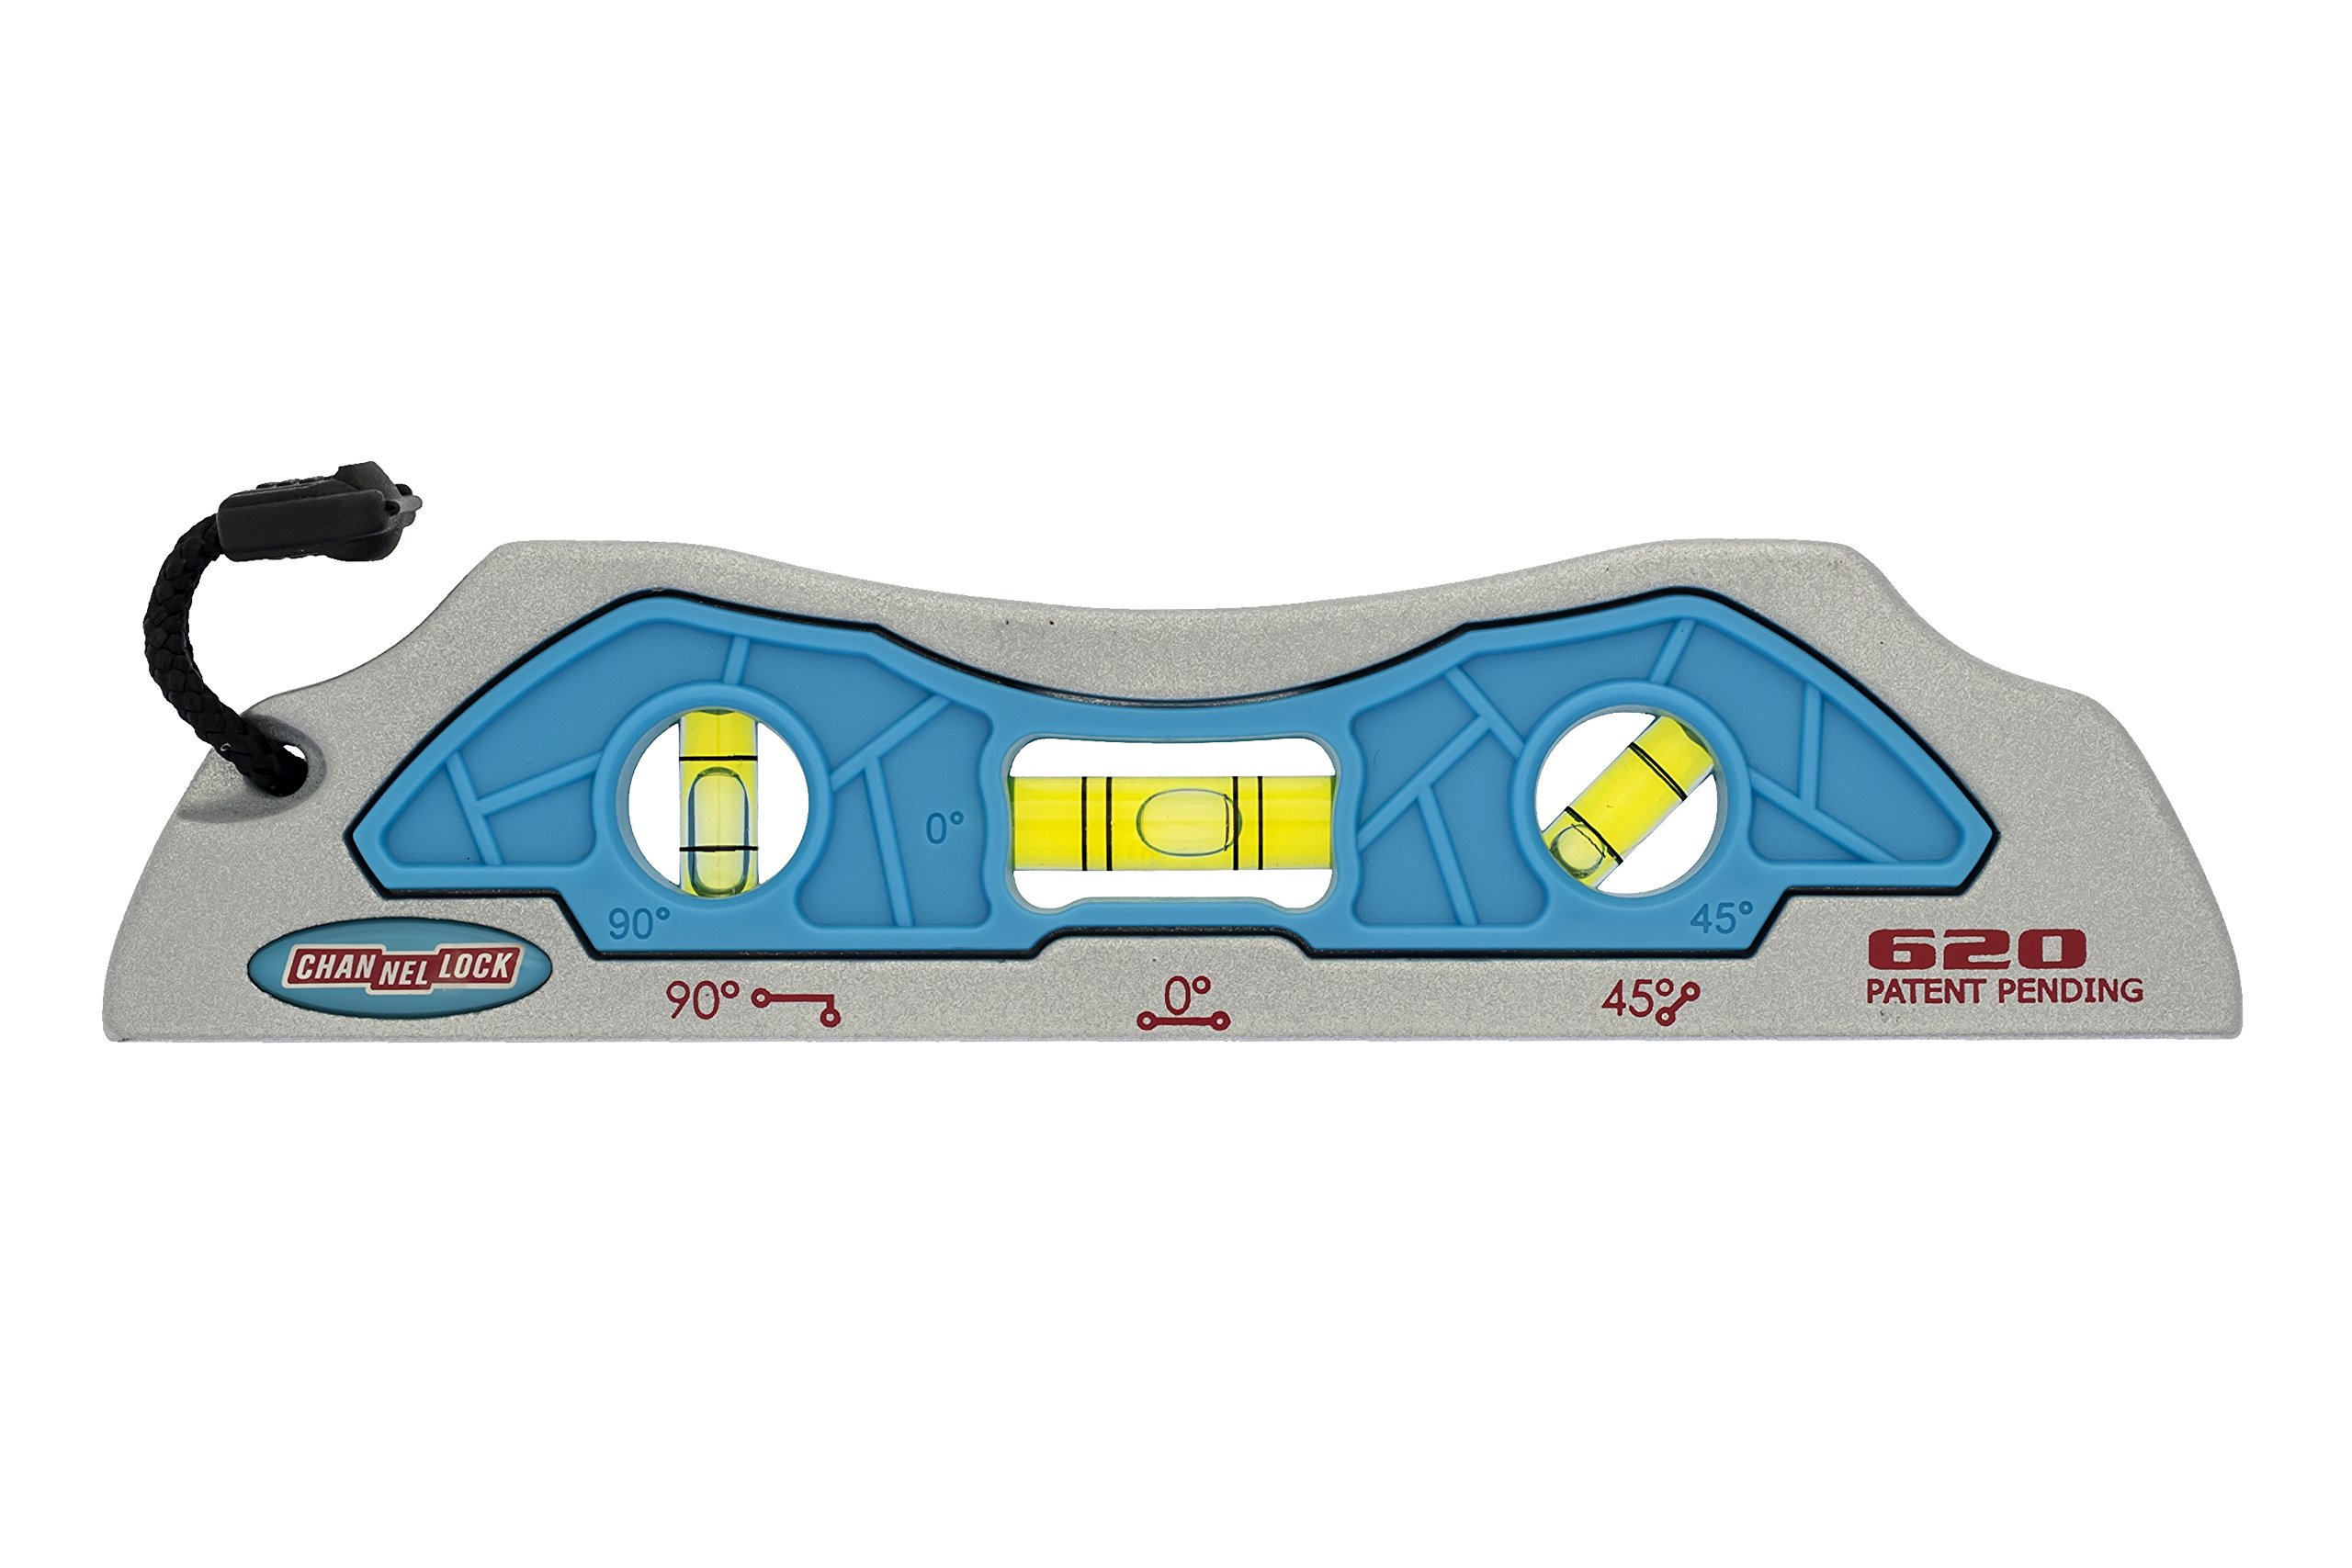 Channellock 620 8.25-Inch Professional Contractor Level